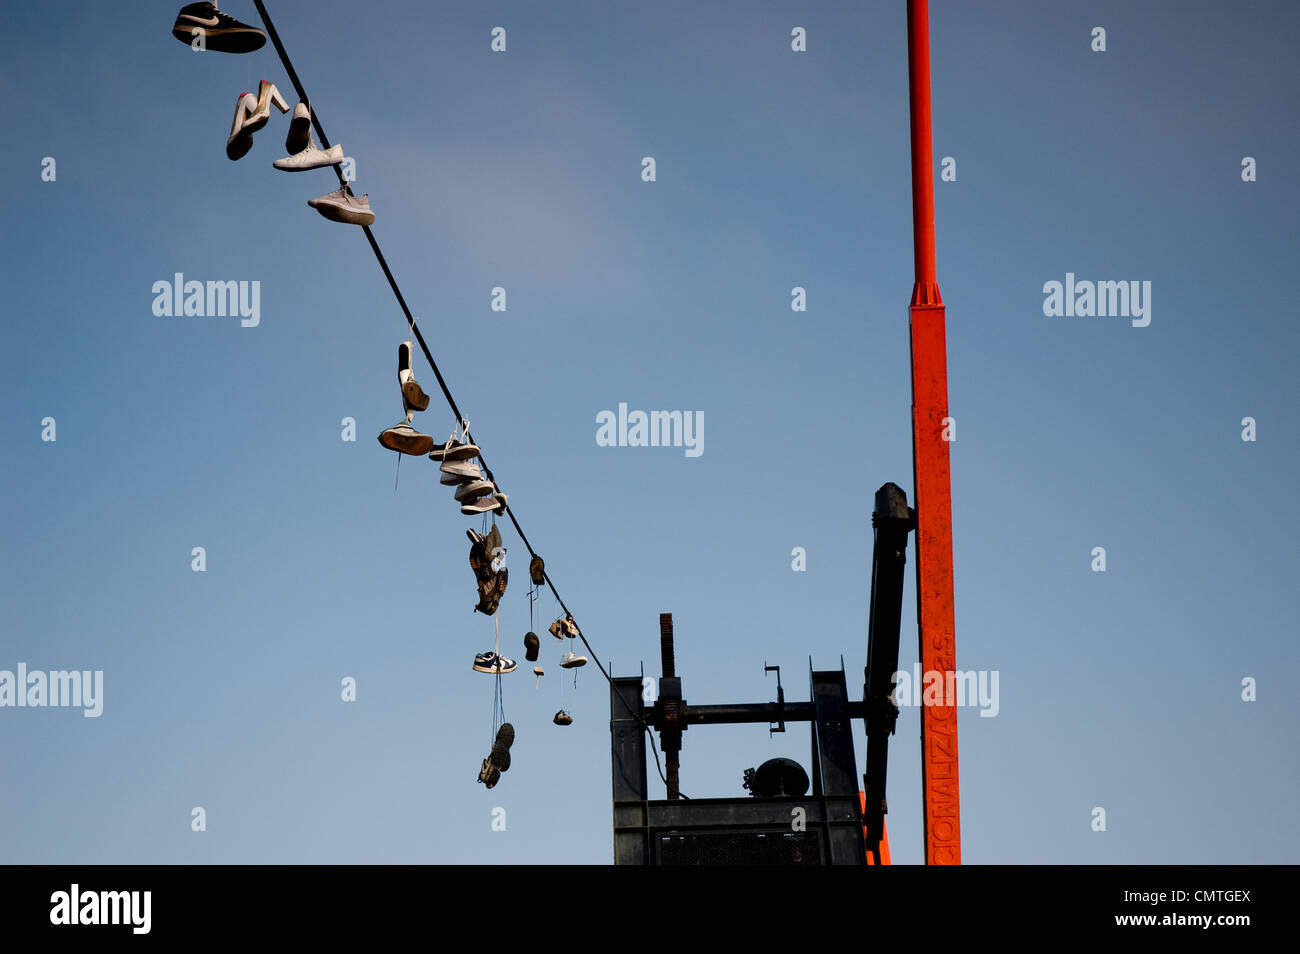 Shoes hanging on a cable of the metronome in Prague, Czech Republic - Stock Image